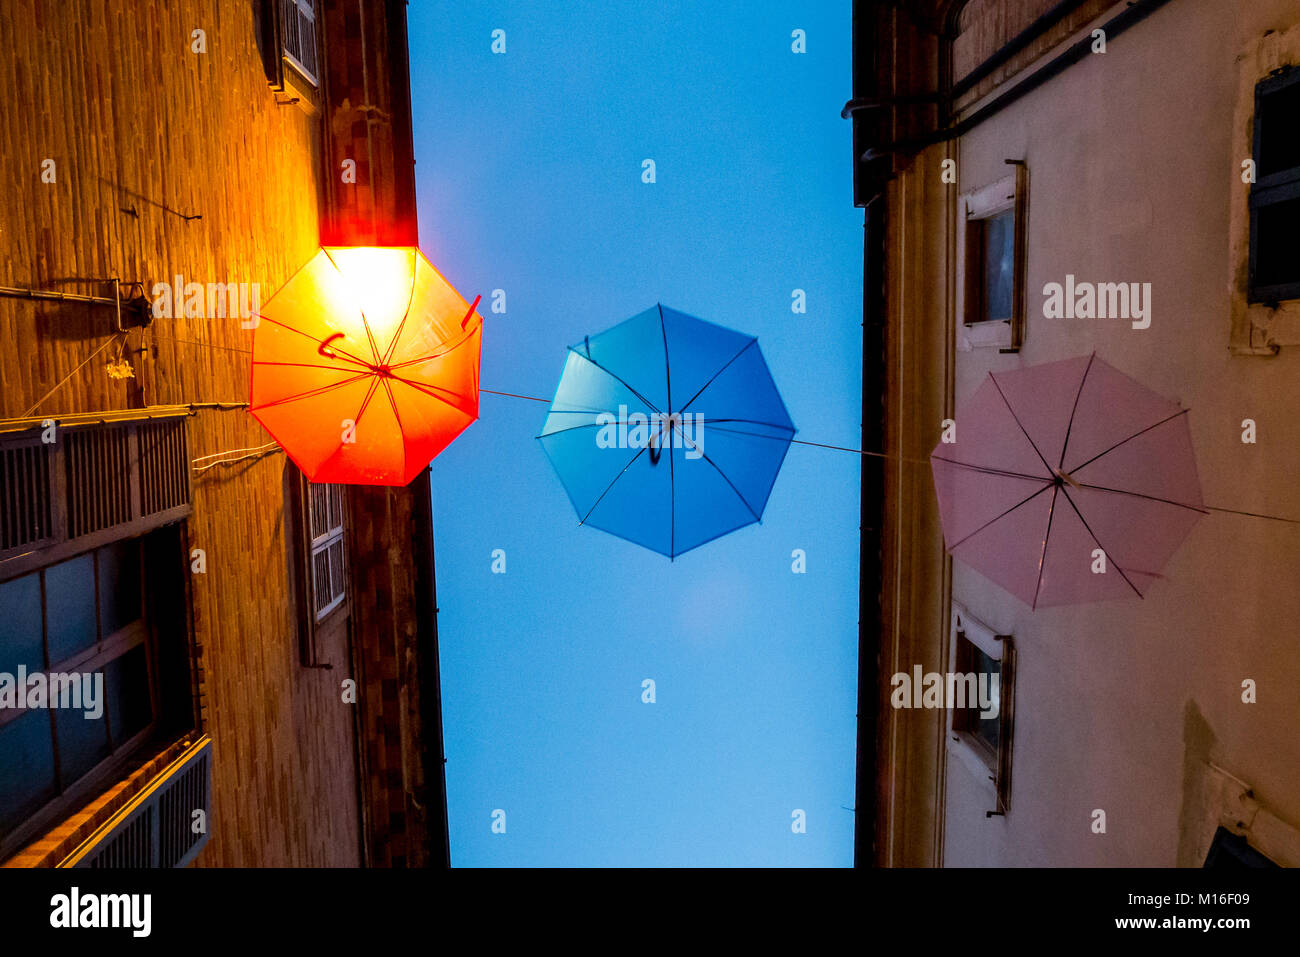 Colorful umbrellas hanging and swinging in an urban alley - Stock Image